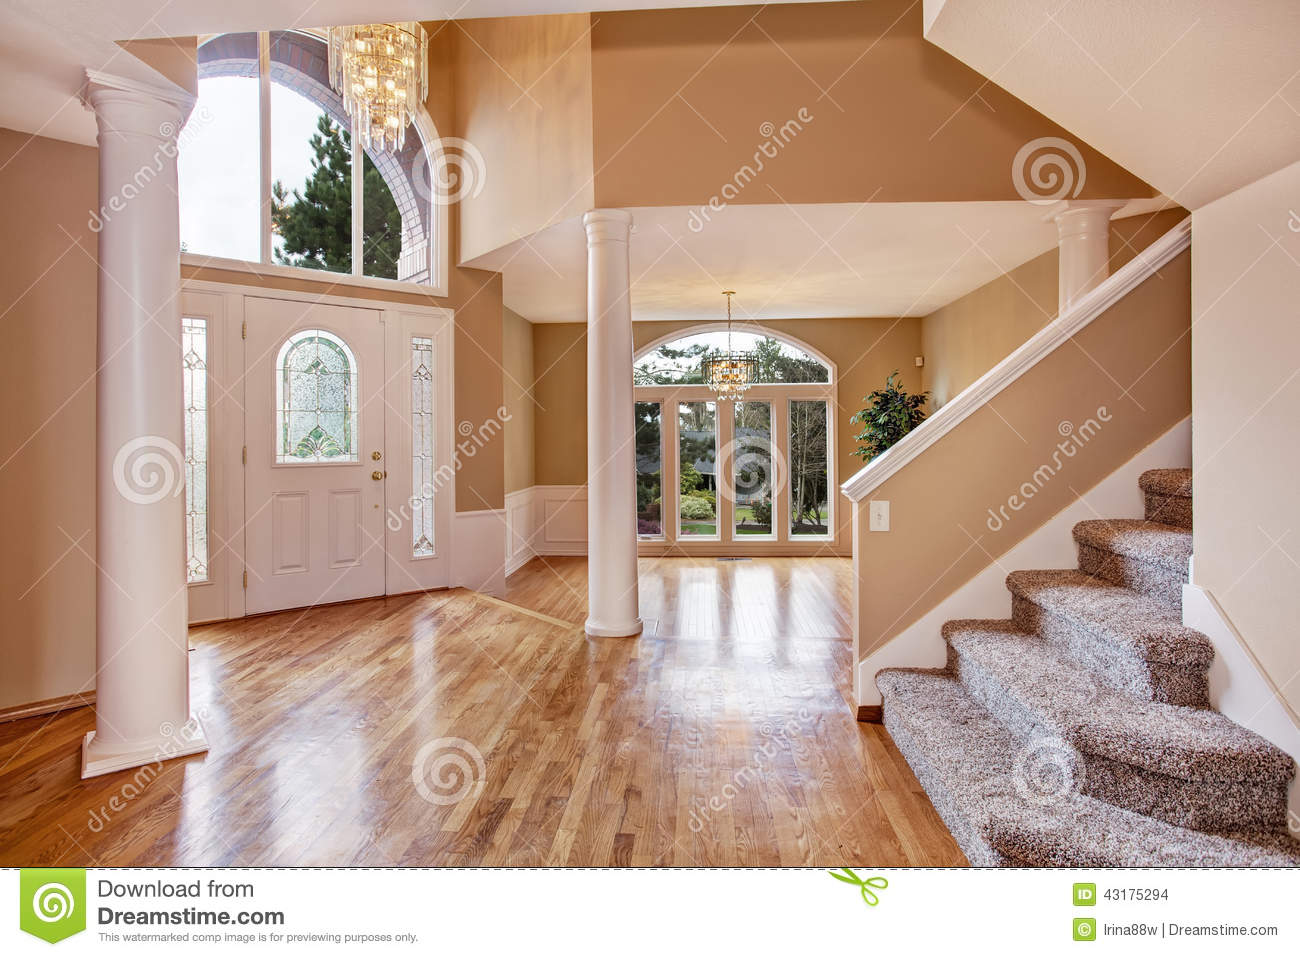 Gorgeous foyer in luxury house stock photo image 43175294 for House plans with foyer entrance